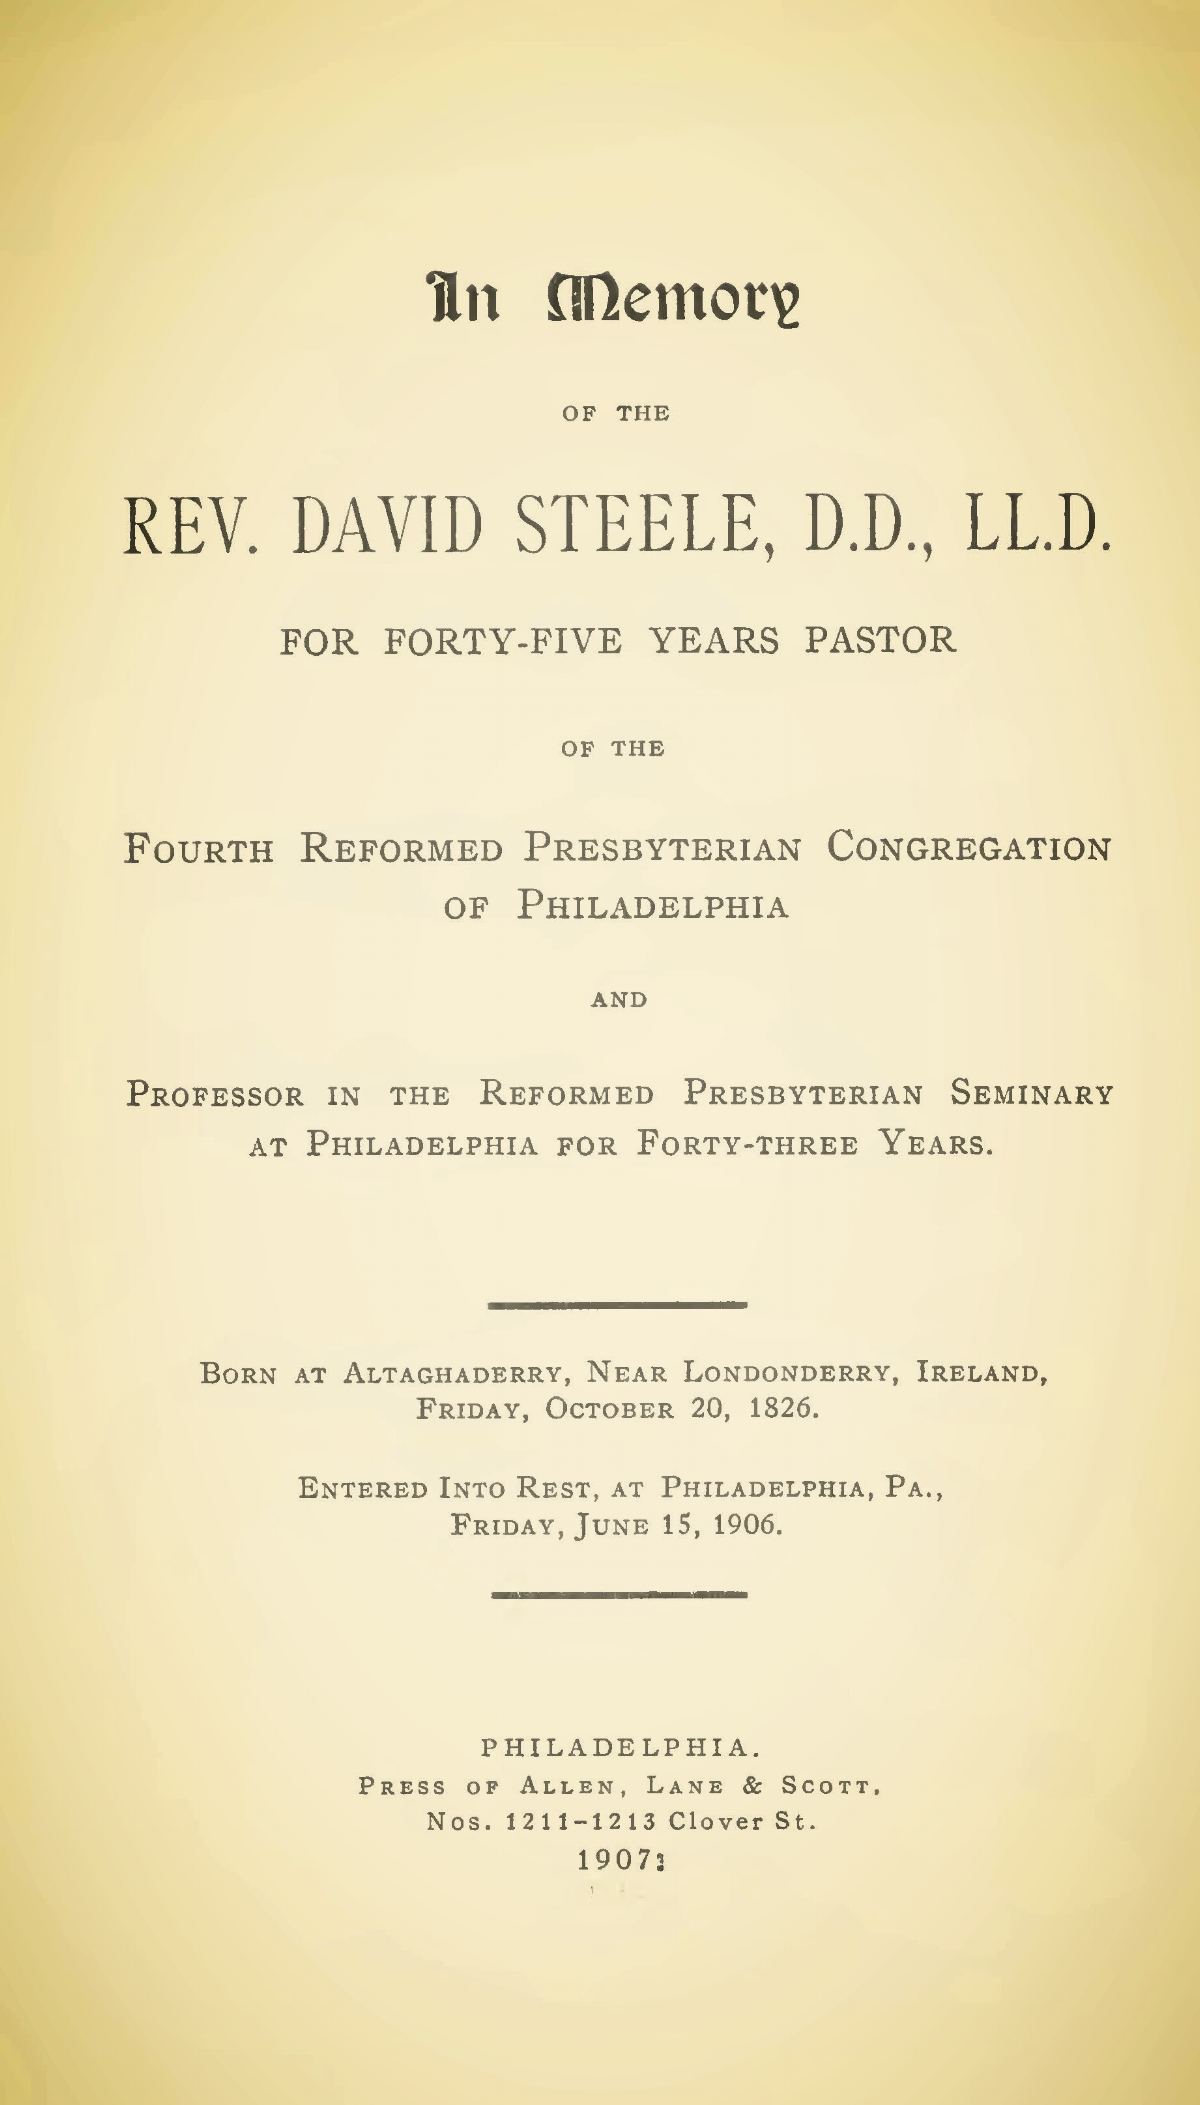 Steele, David, In Memory of the Rev. David Steele, D.D., L.L.D. TItle Page.jpg